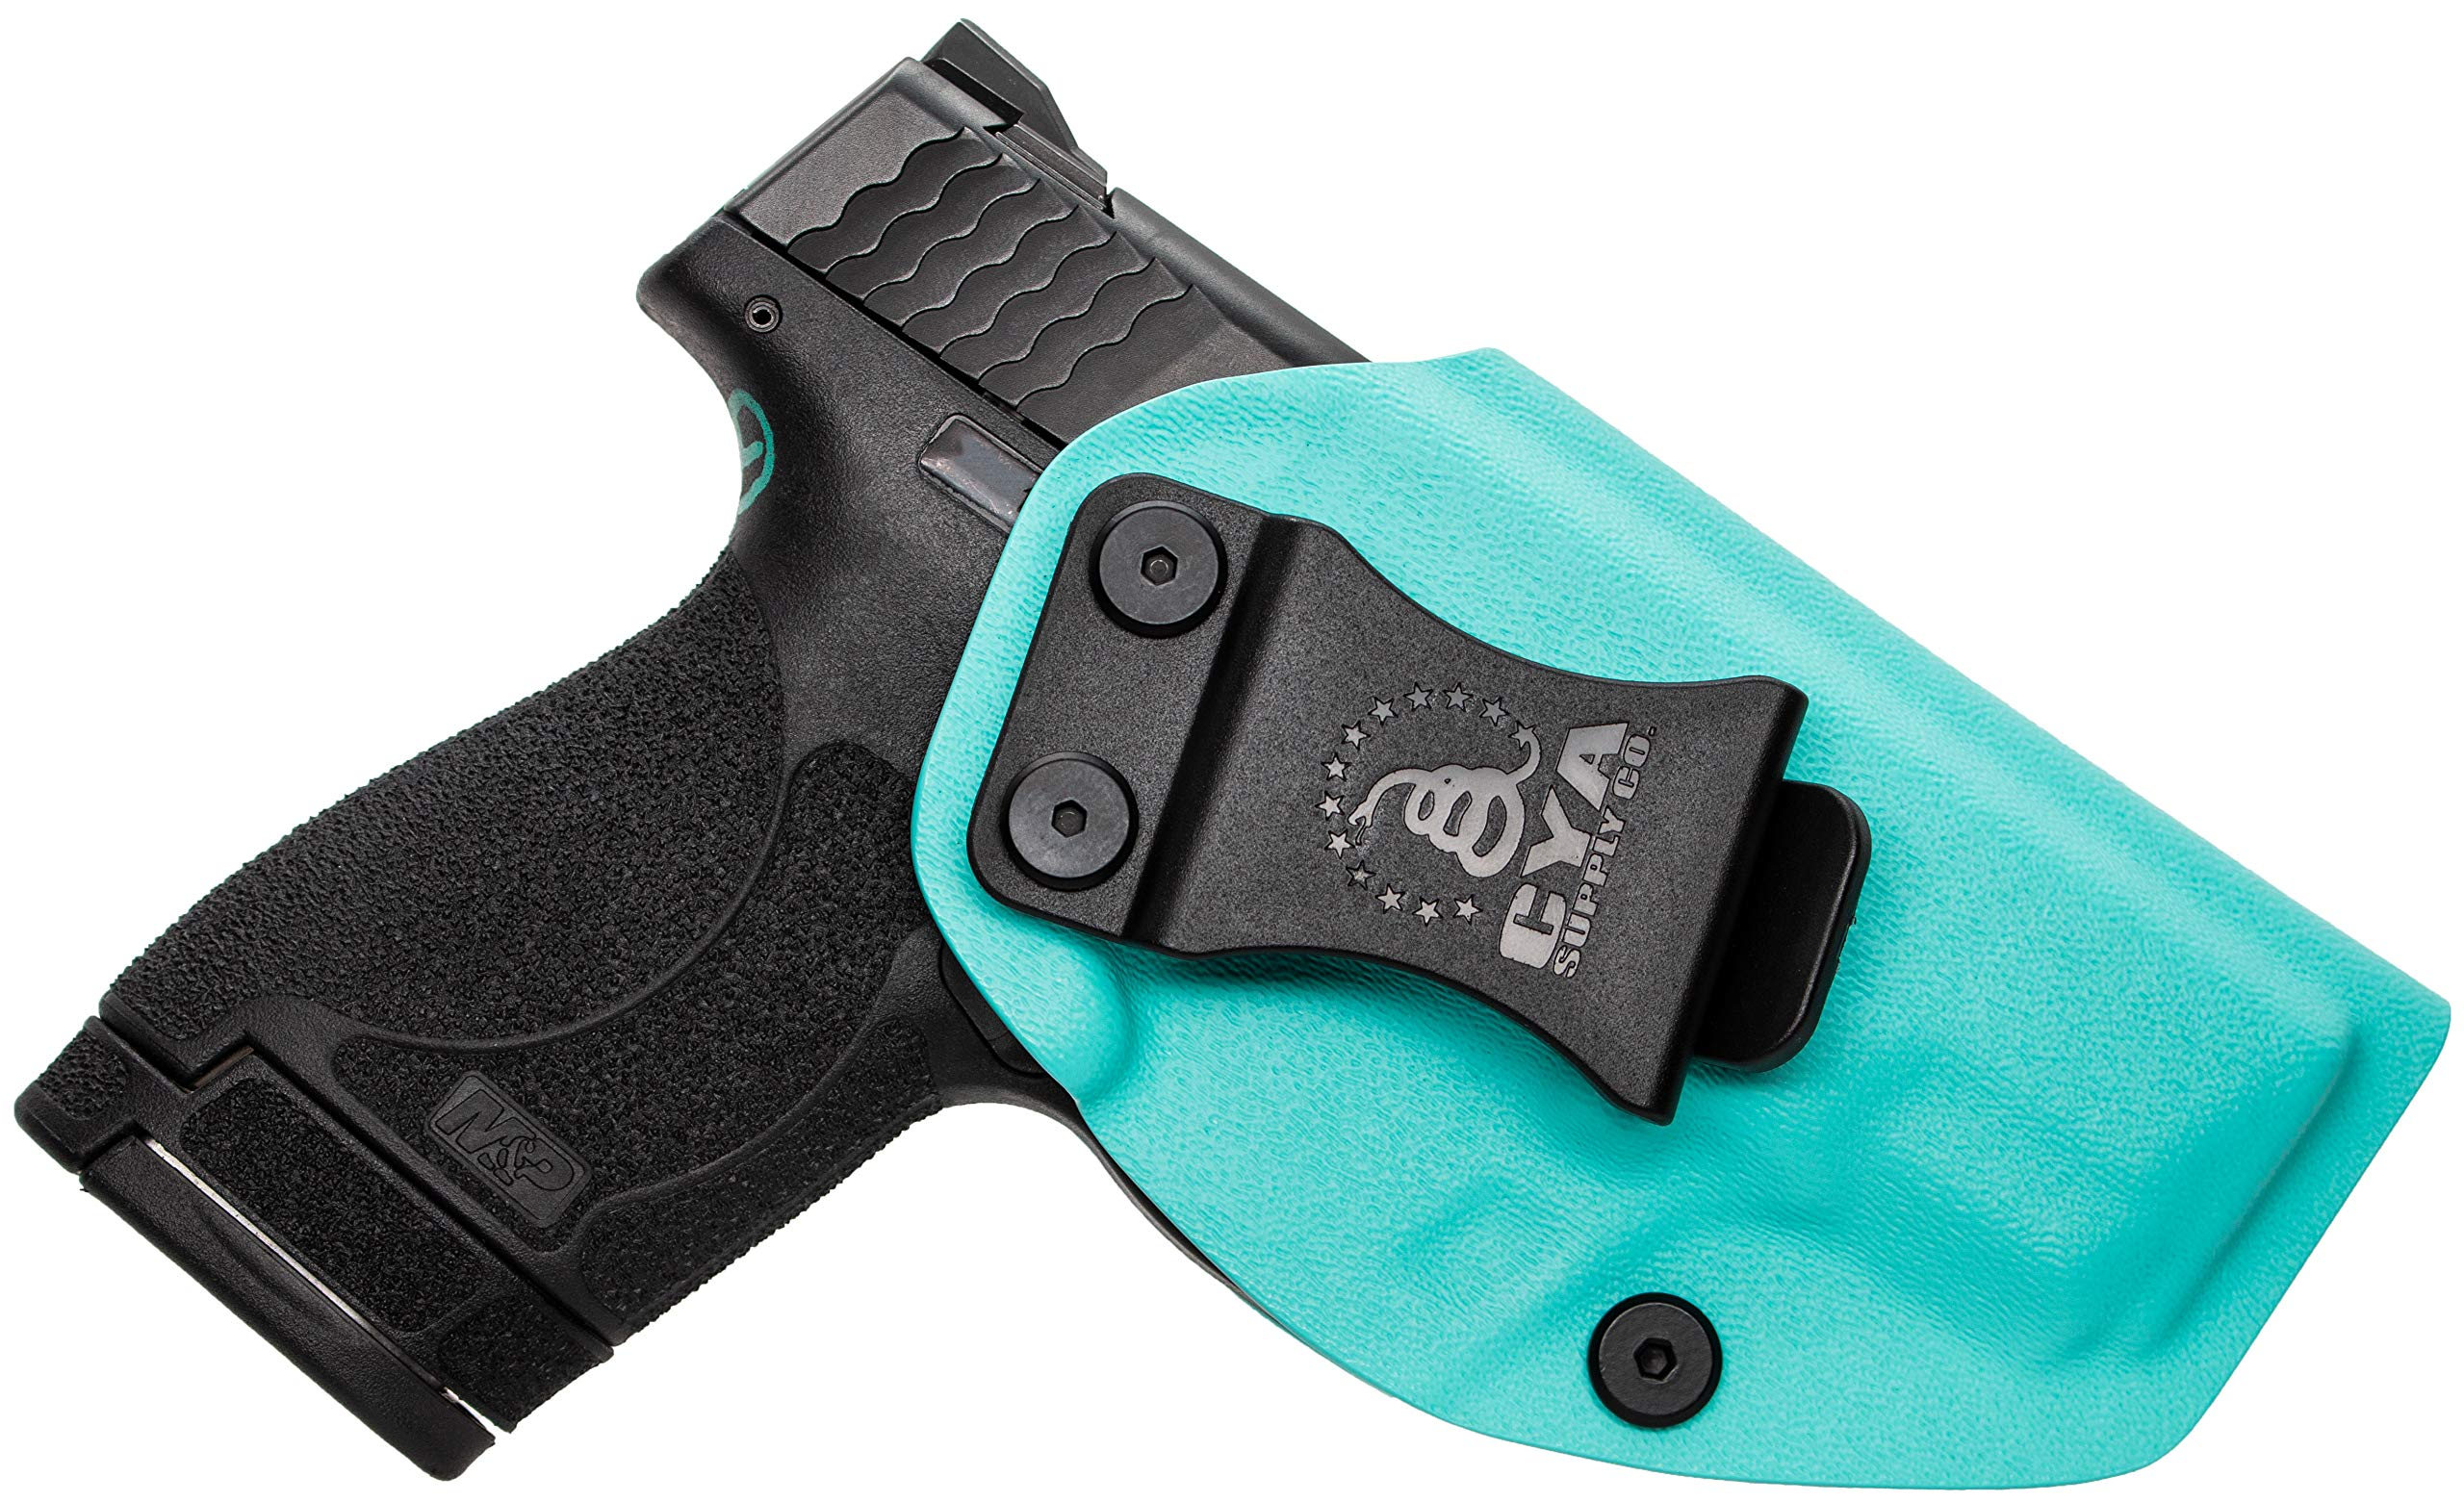 CYA Supply Co. IWB Holster Fits: Smith & Wesson M&P Shield & Shield 2.0-9MM/.40 S&W - Veteran Owned Company - Made in USA - Inside Waistband Concealed Carry Holster